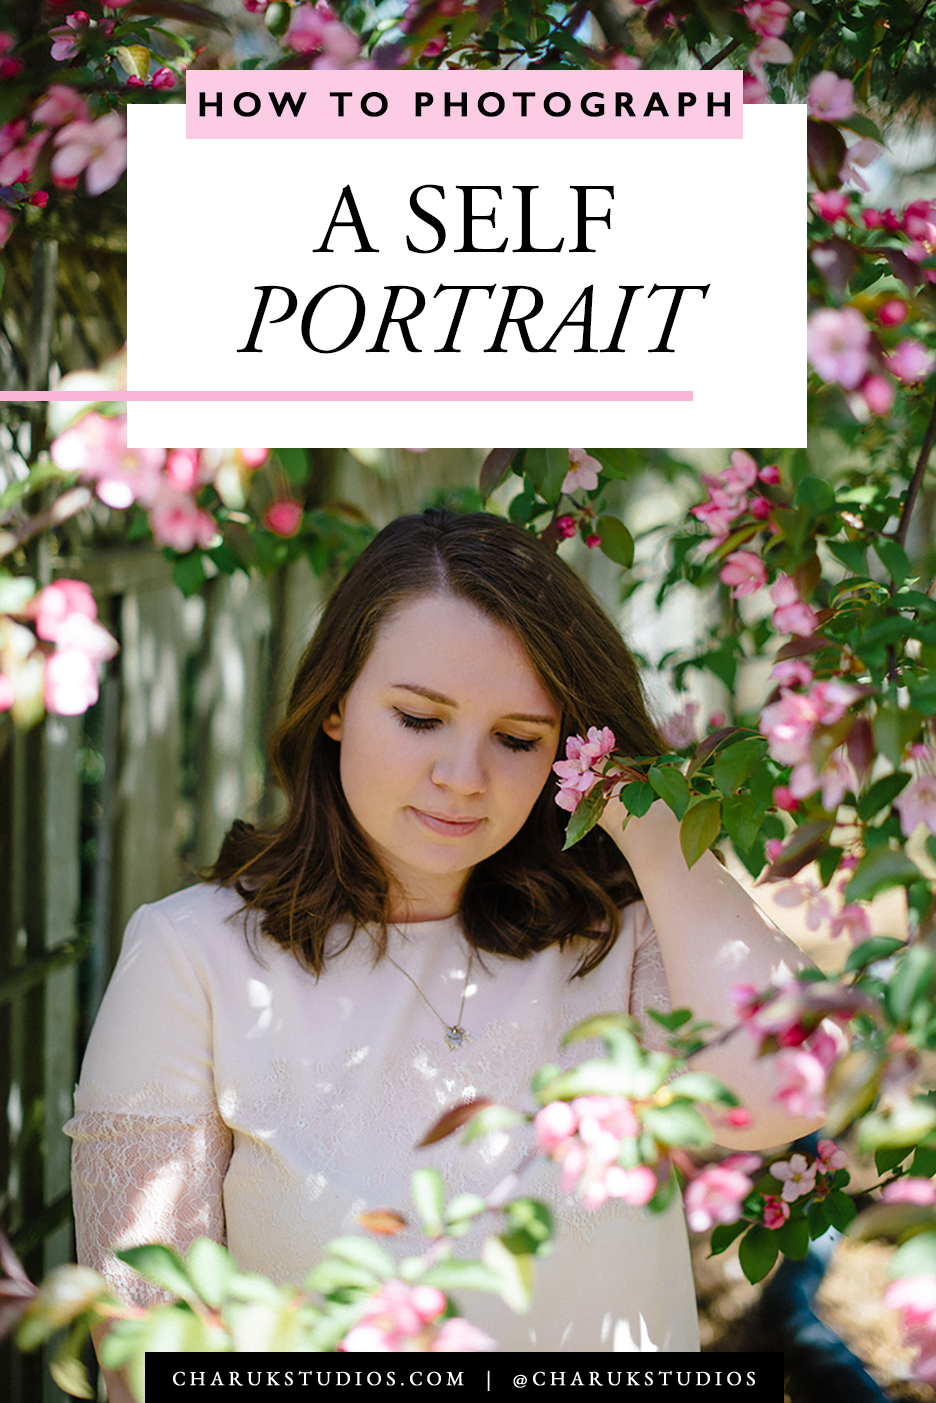 How to Photograph a Self Portrait